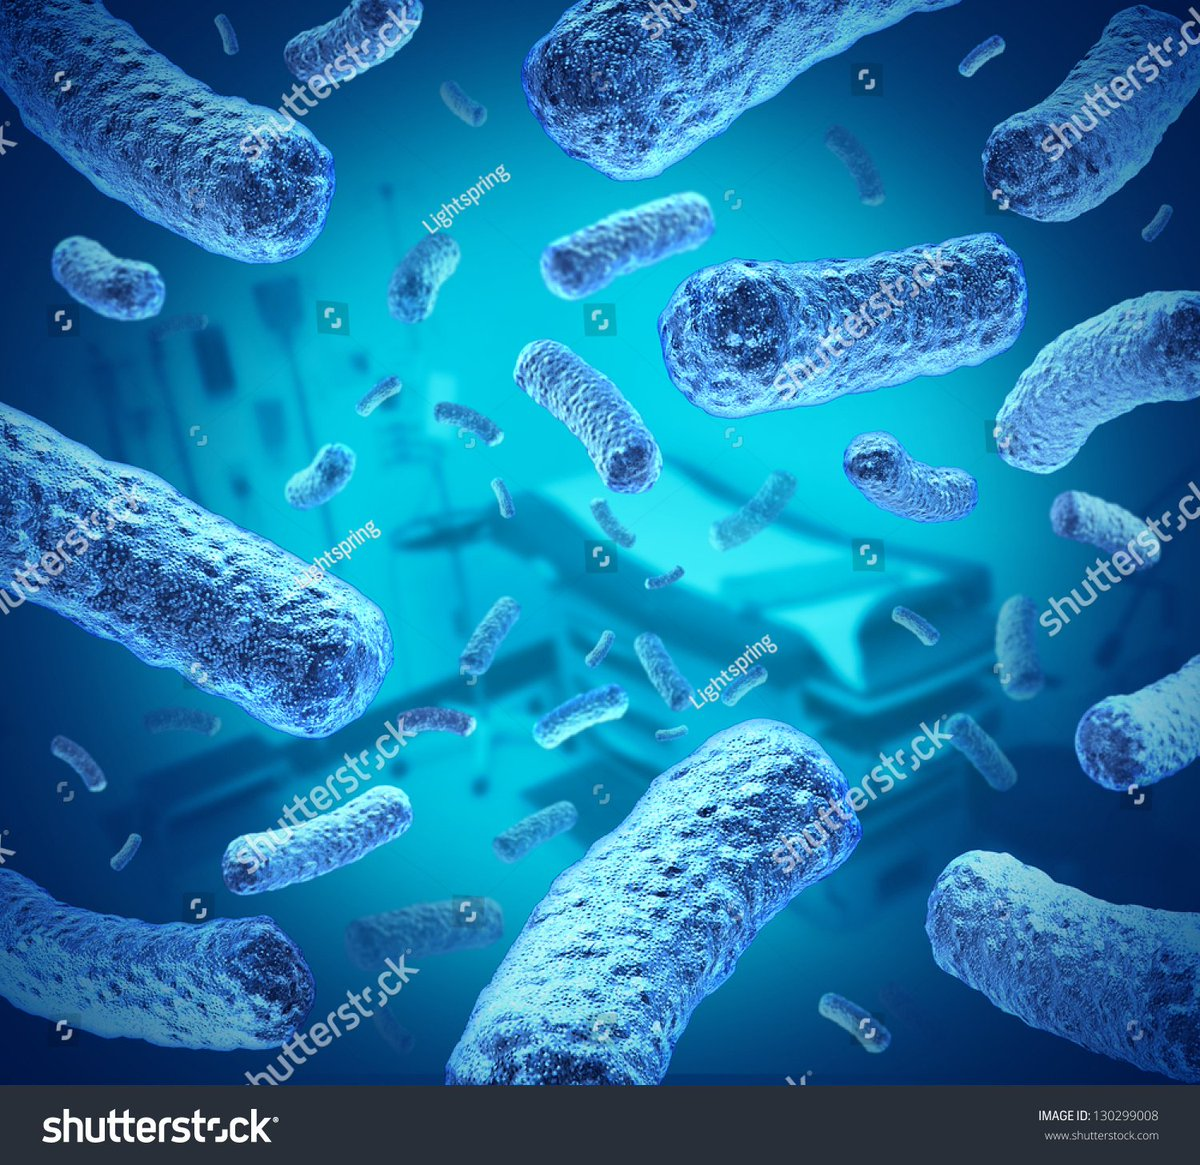 Cellabratelife Hashtag On Twitter Eukaryotic Cells Are Generally Much Larger Than Prokaryotic Ten Times Humans Have About 100 Trillion In Their Body Found This